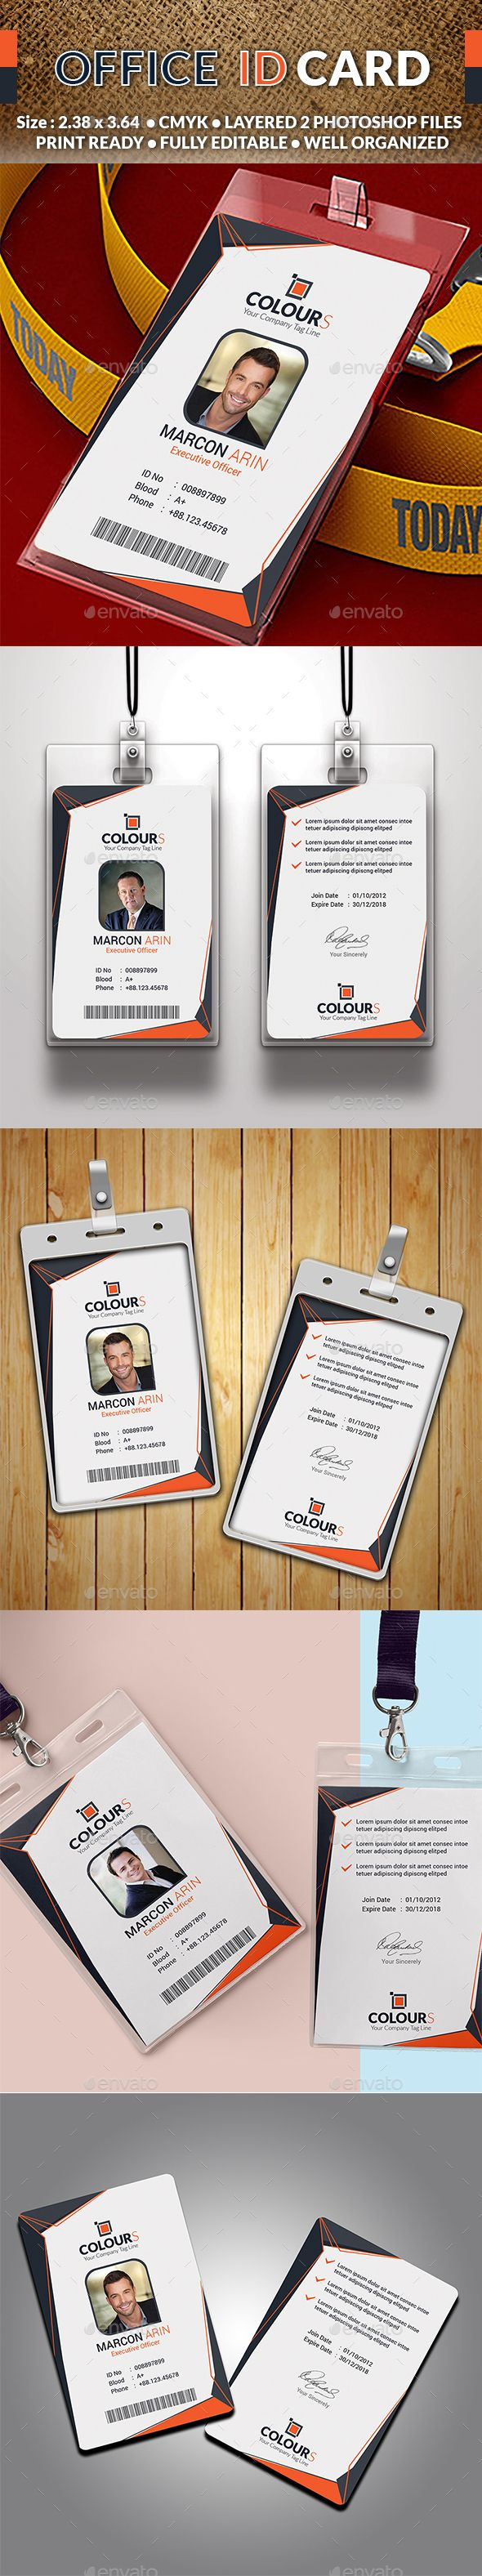 Office ID Card | Print templates, Template and Business cards